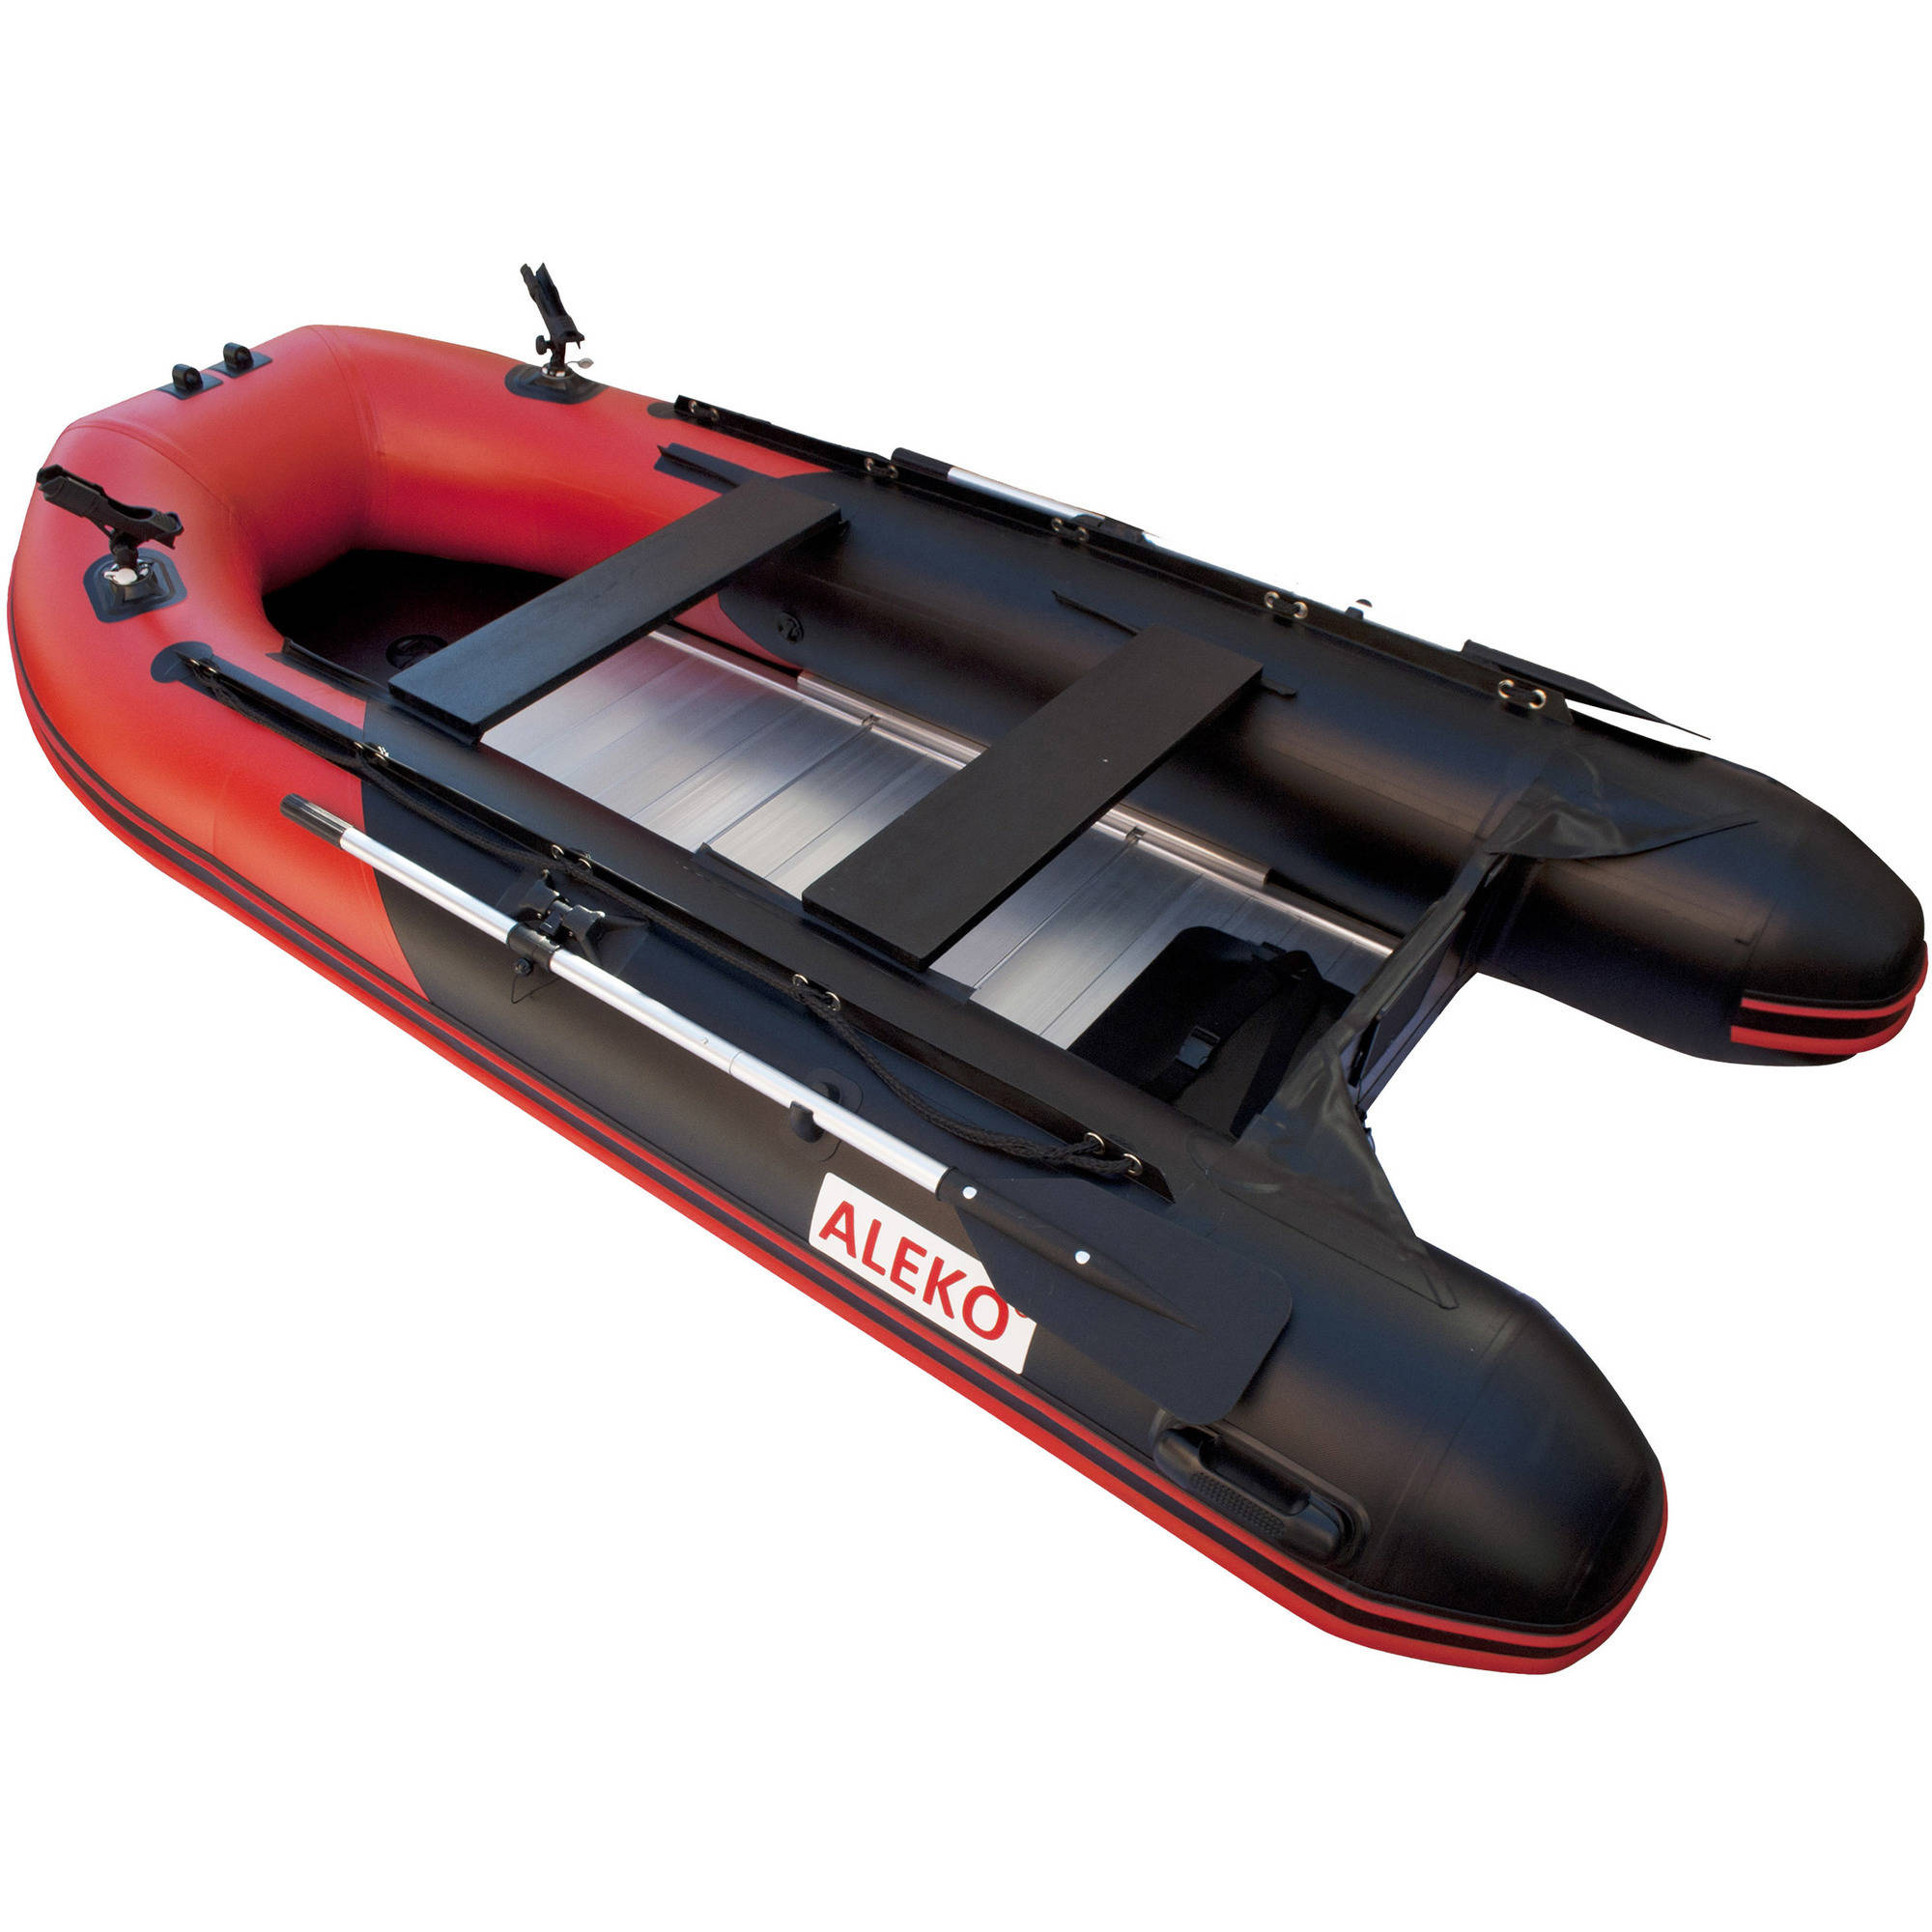 Click here to buy ALEKO BTF320GR PRO Fishing Boat Raft 10.5' with Aluminum Floor 4-Person Inflatable Boat with Fishing Rod Holders and... by ALEKO.